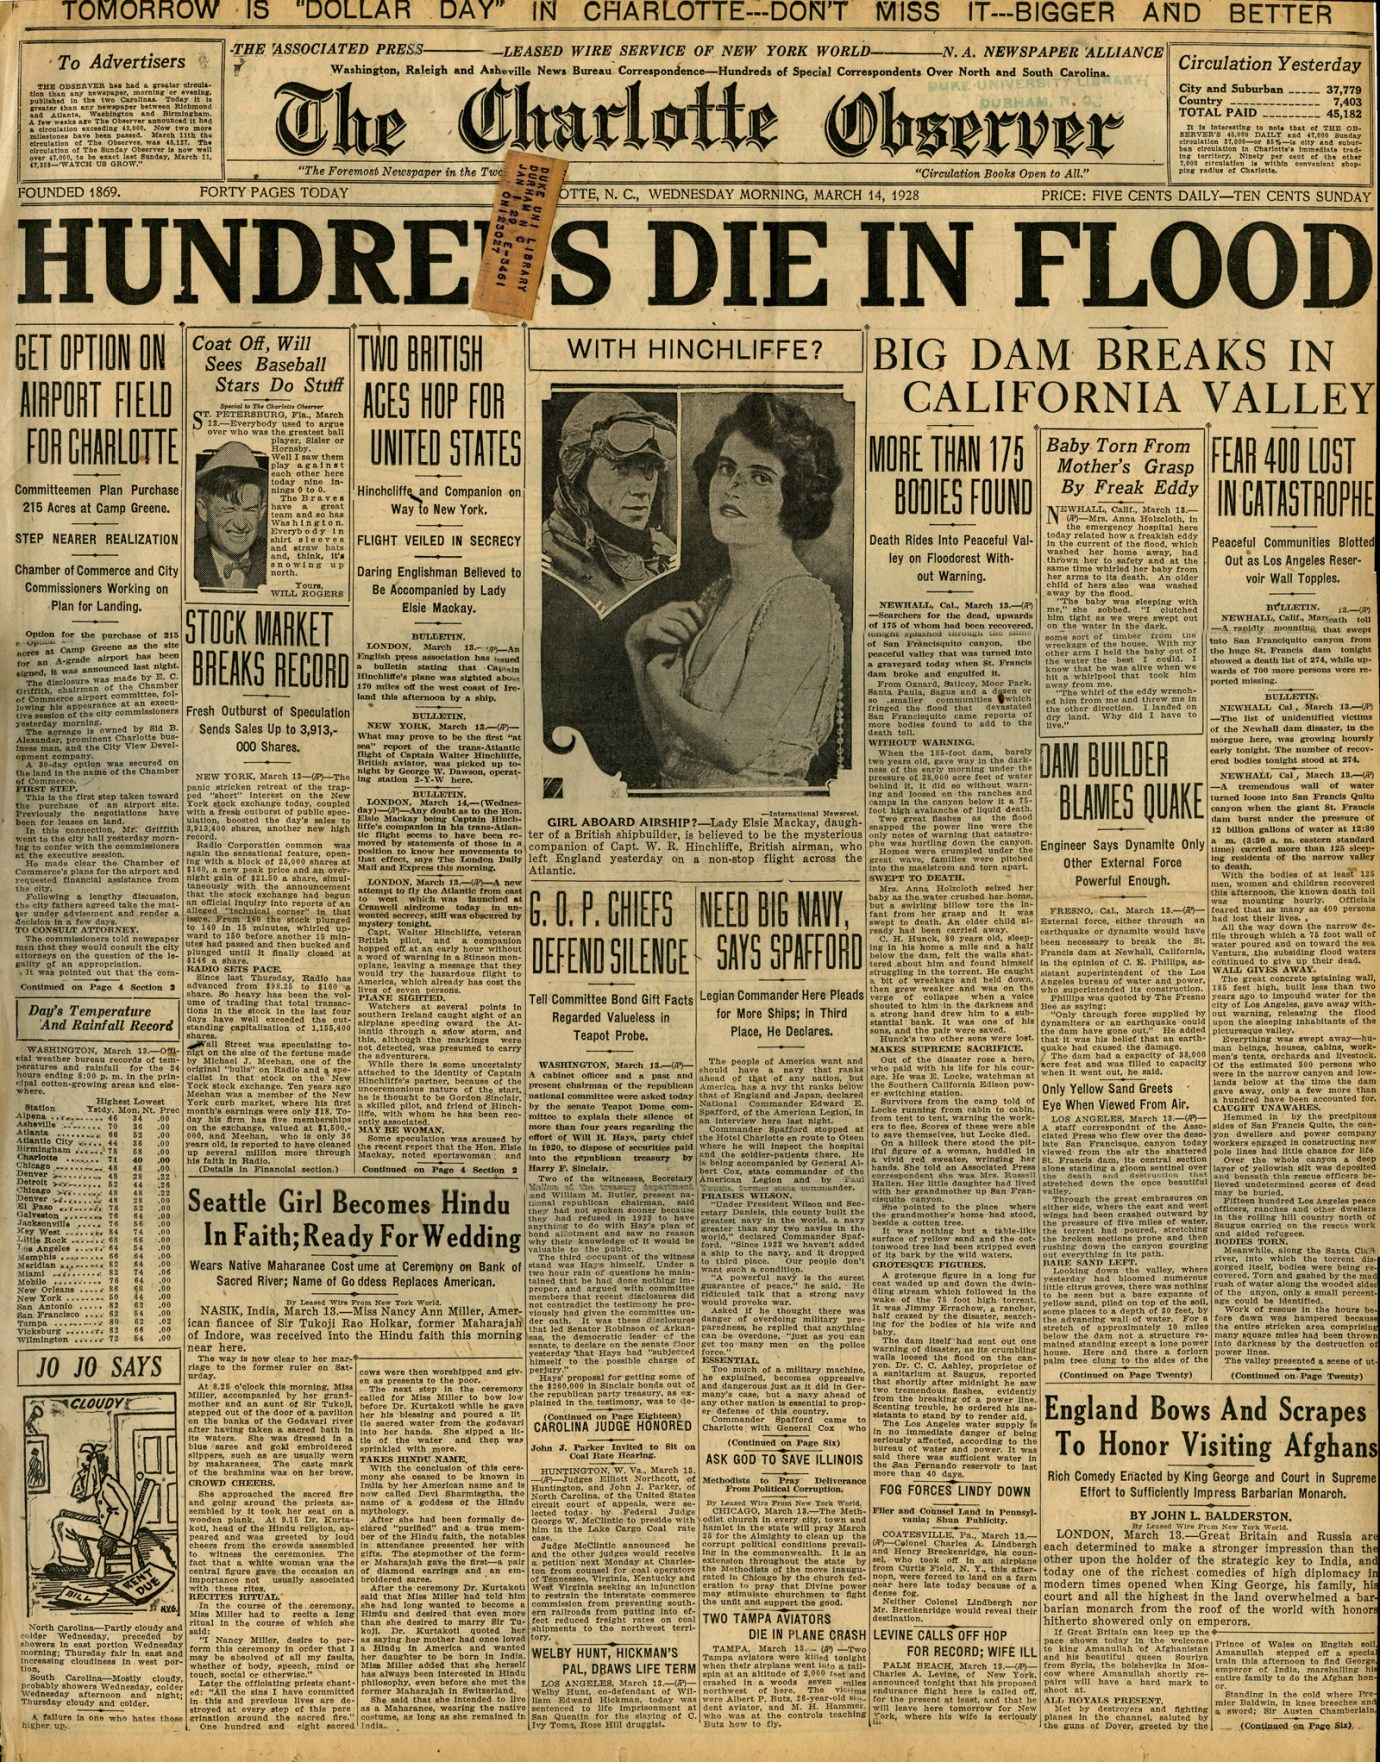 St. Francis Dam Disaster.  THE CHARLOTTE OBSERVER (NEWSPAPER),  WEDNESDAY, MARCH 14, 1928